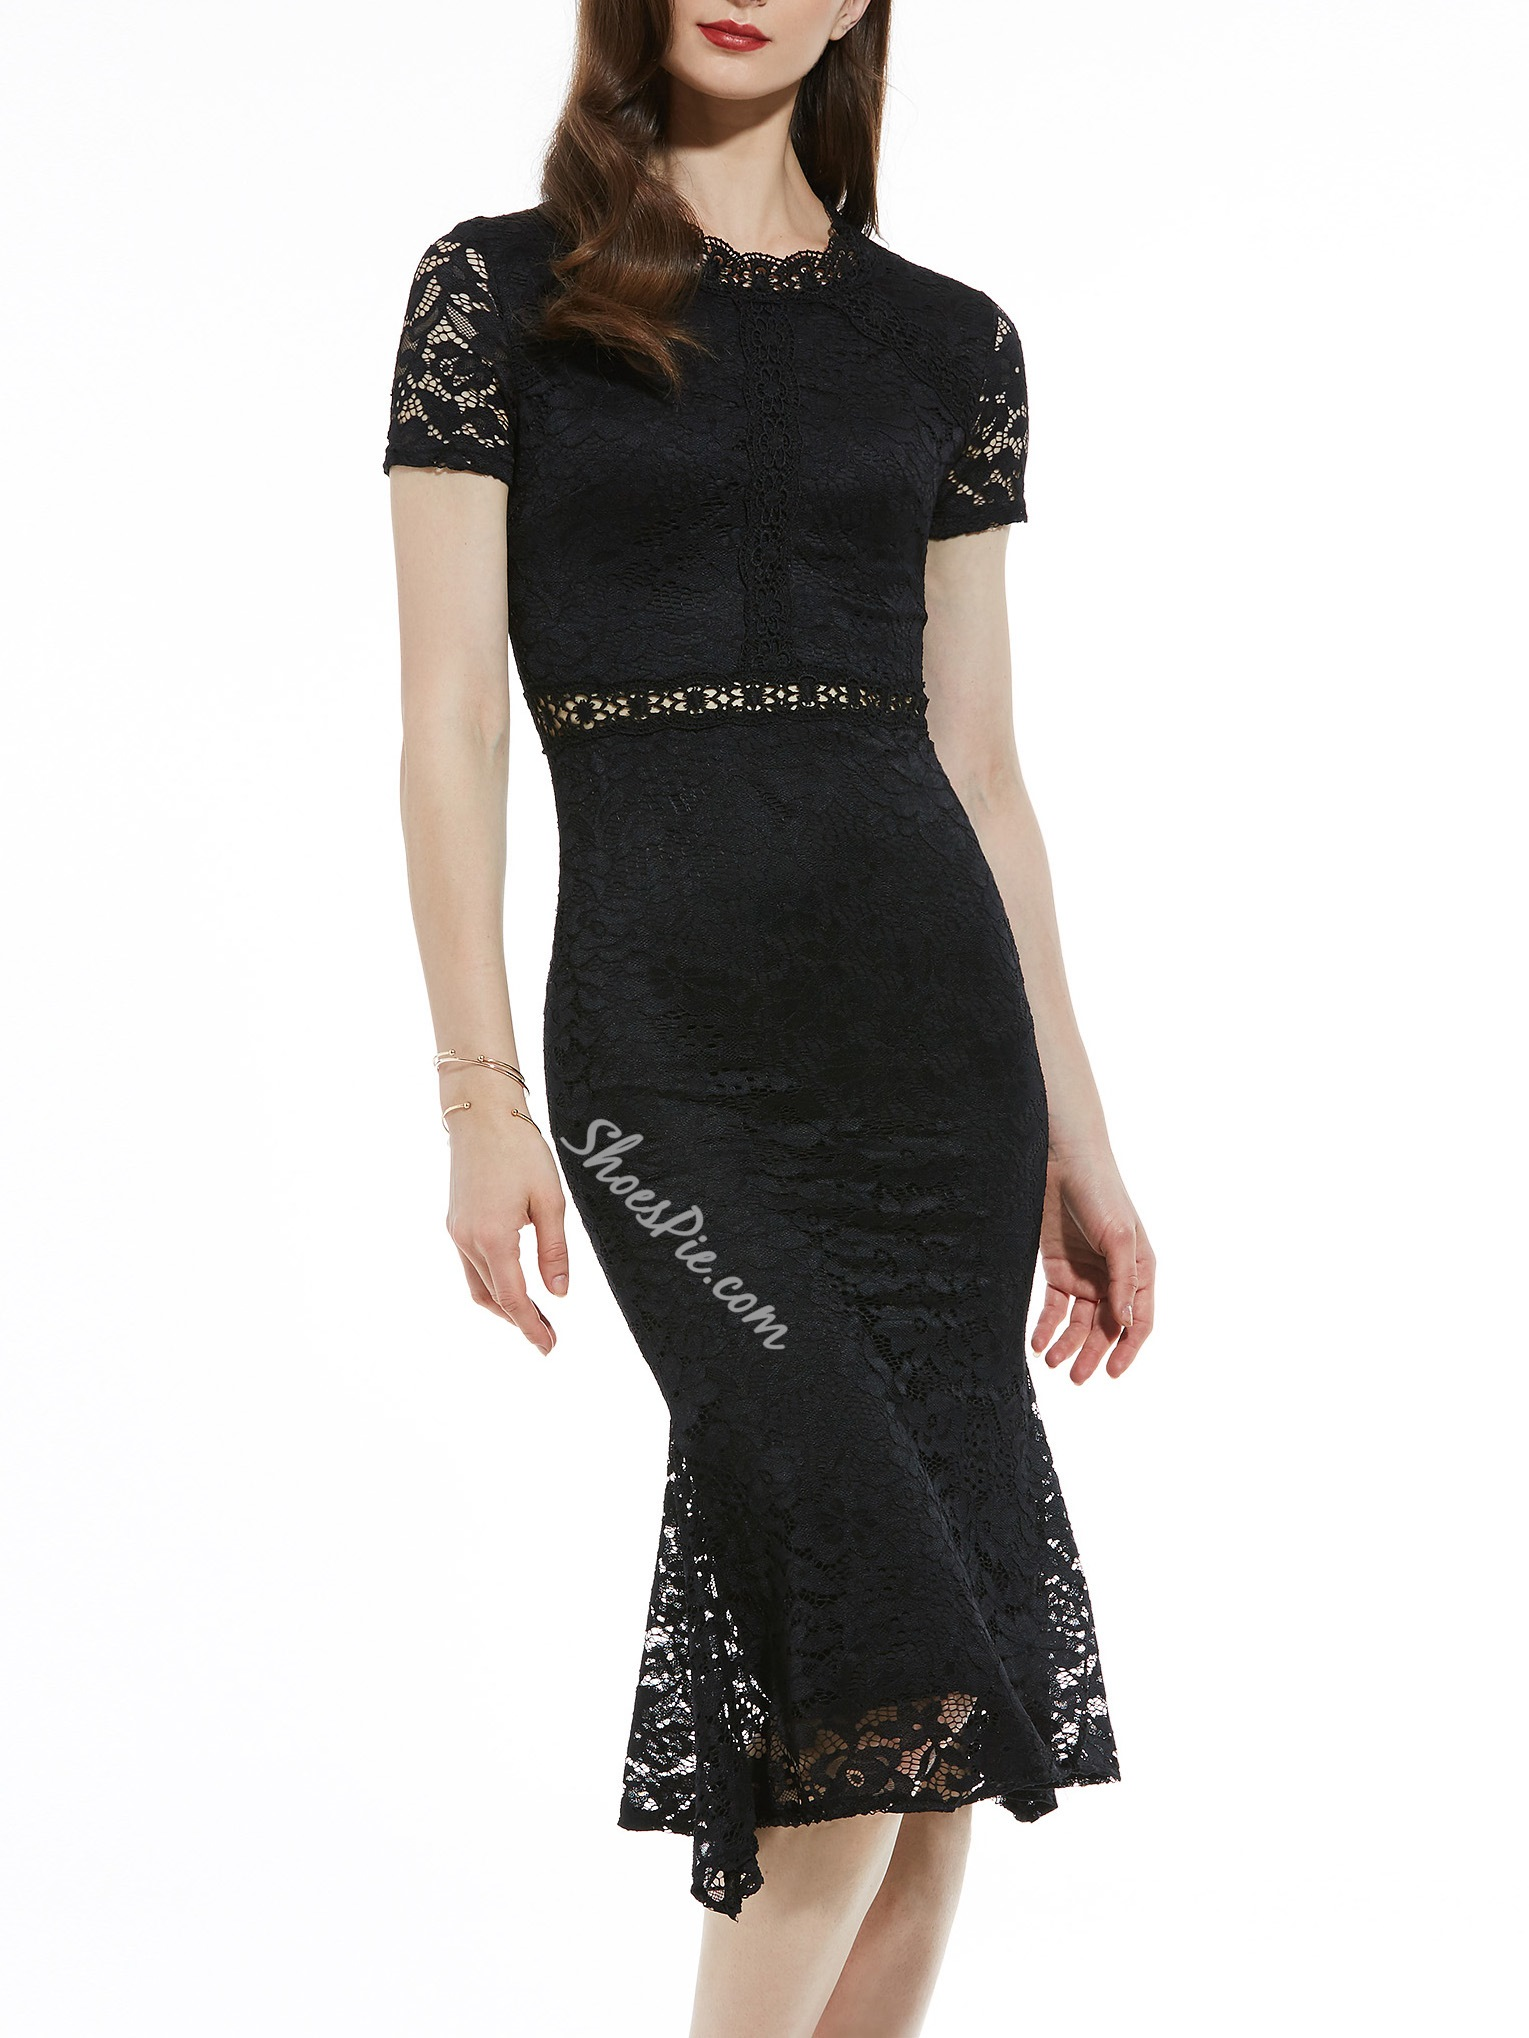 Mid-Calf Round Neck Hollow Women's Lace Dress